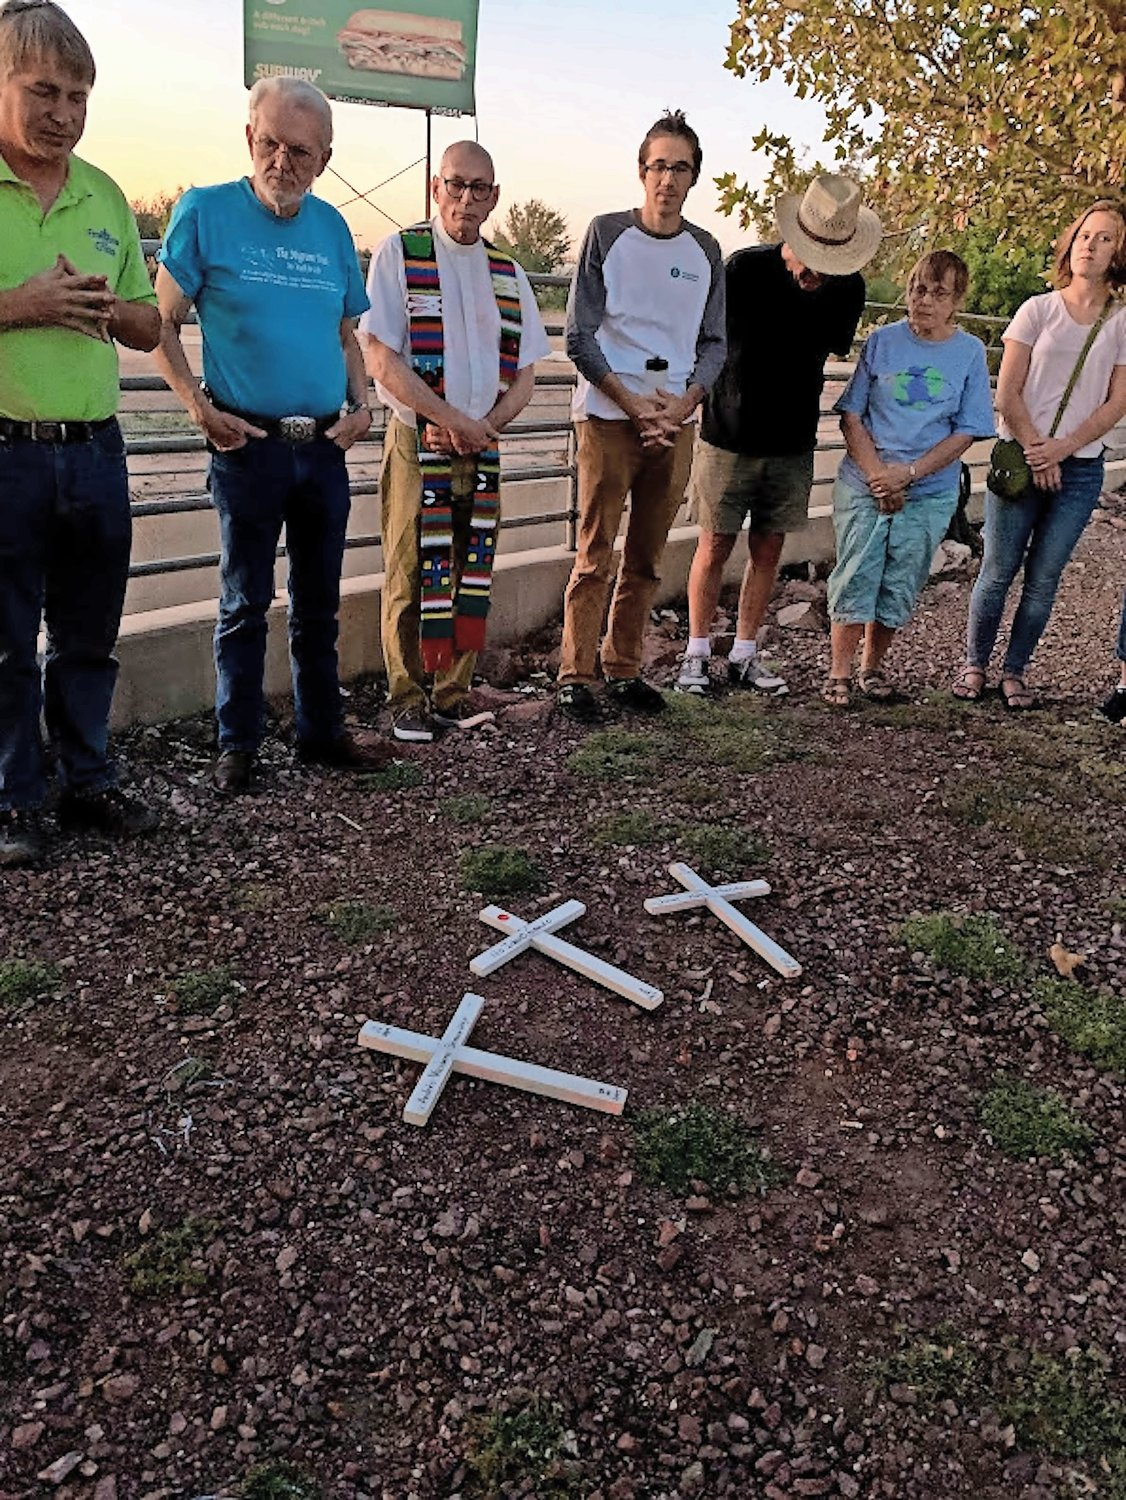 During the trip, the delegation joined a prayer vigil in memory of those who have perished in the desert of Cochise County in Arizona while seeking refuge in the United States.